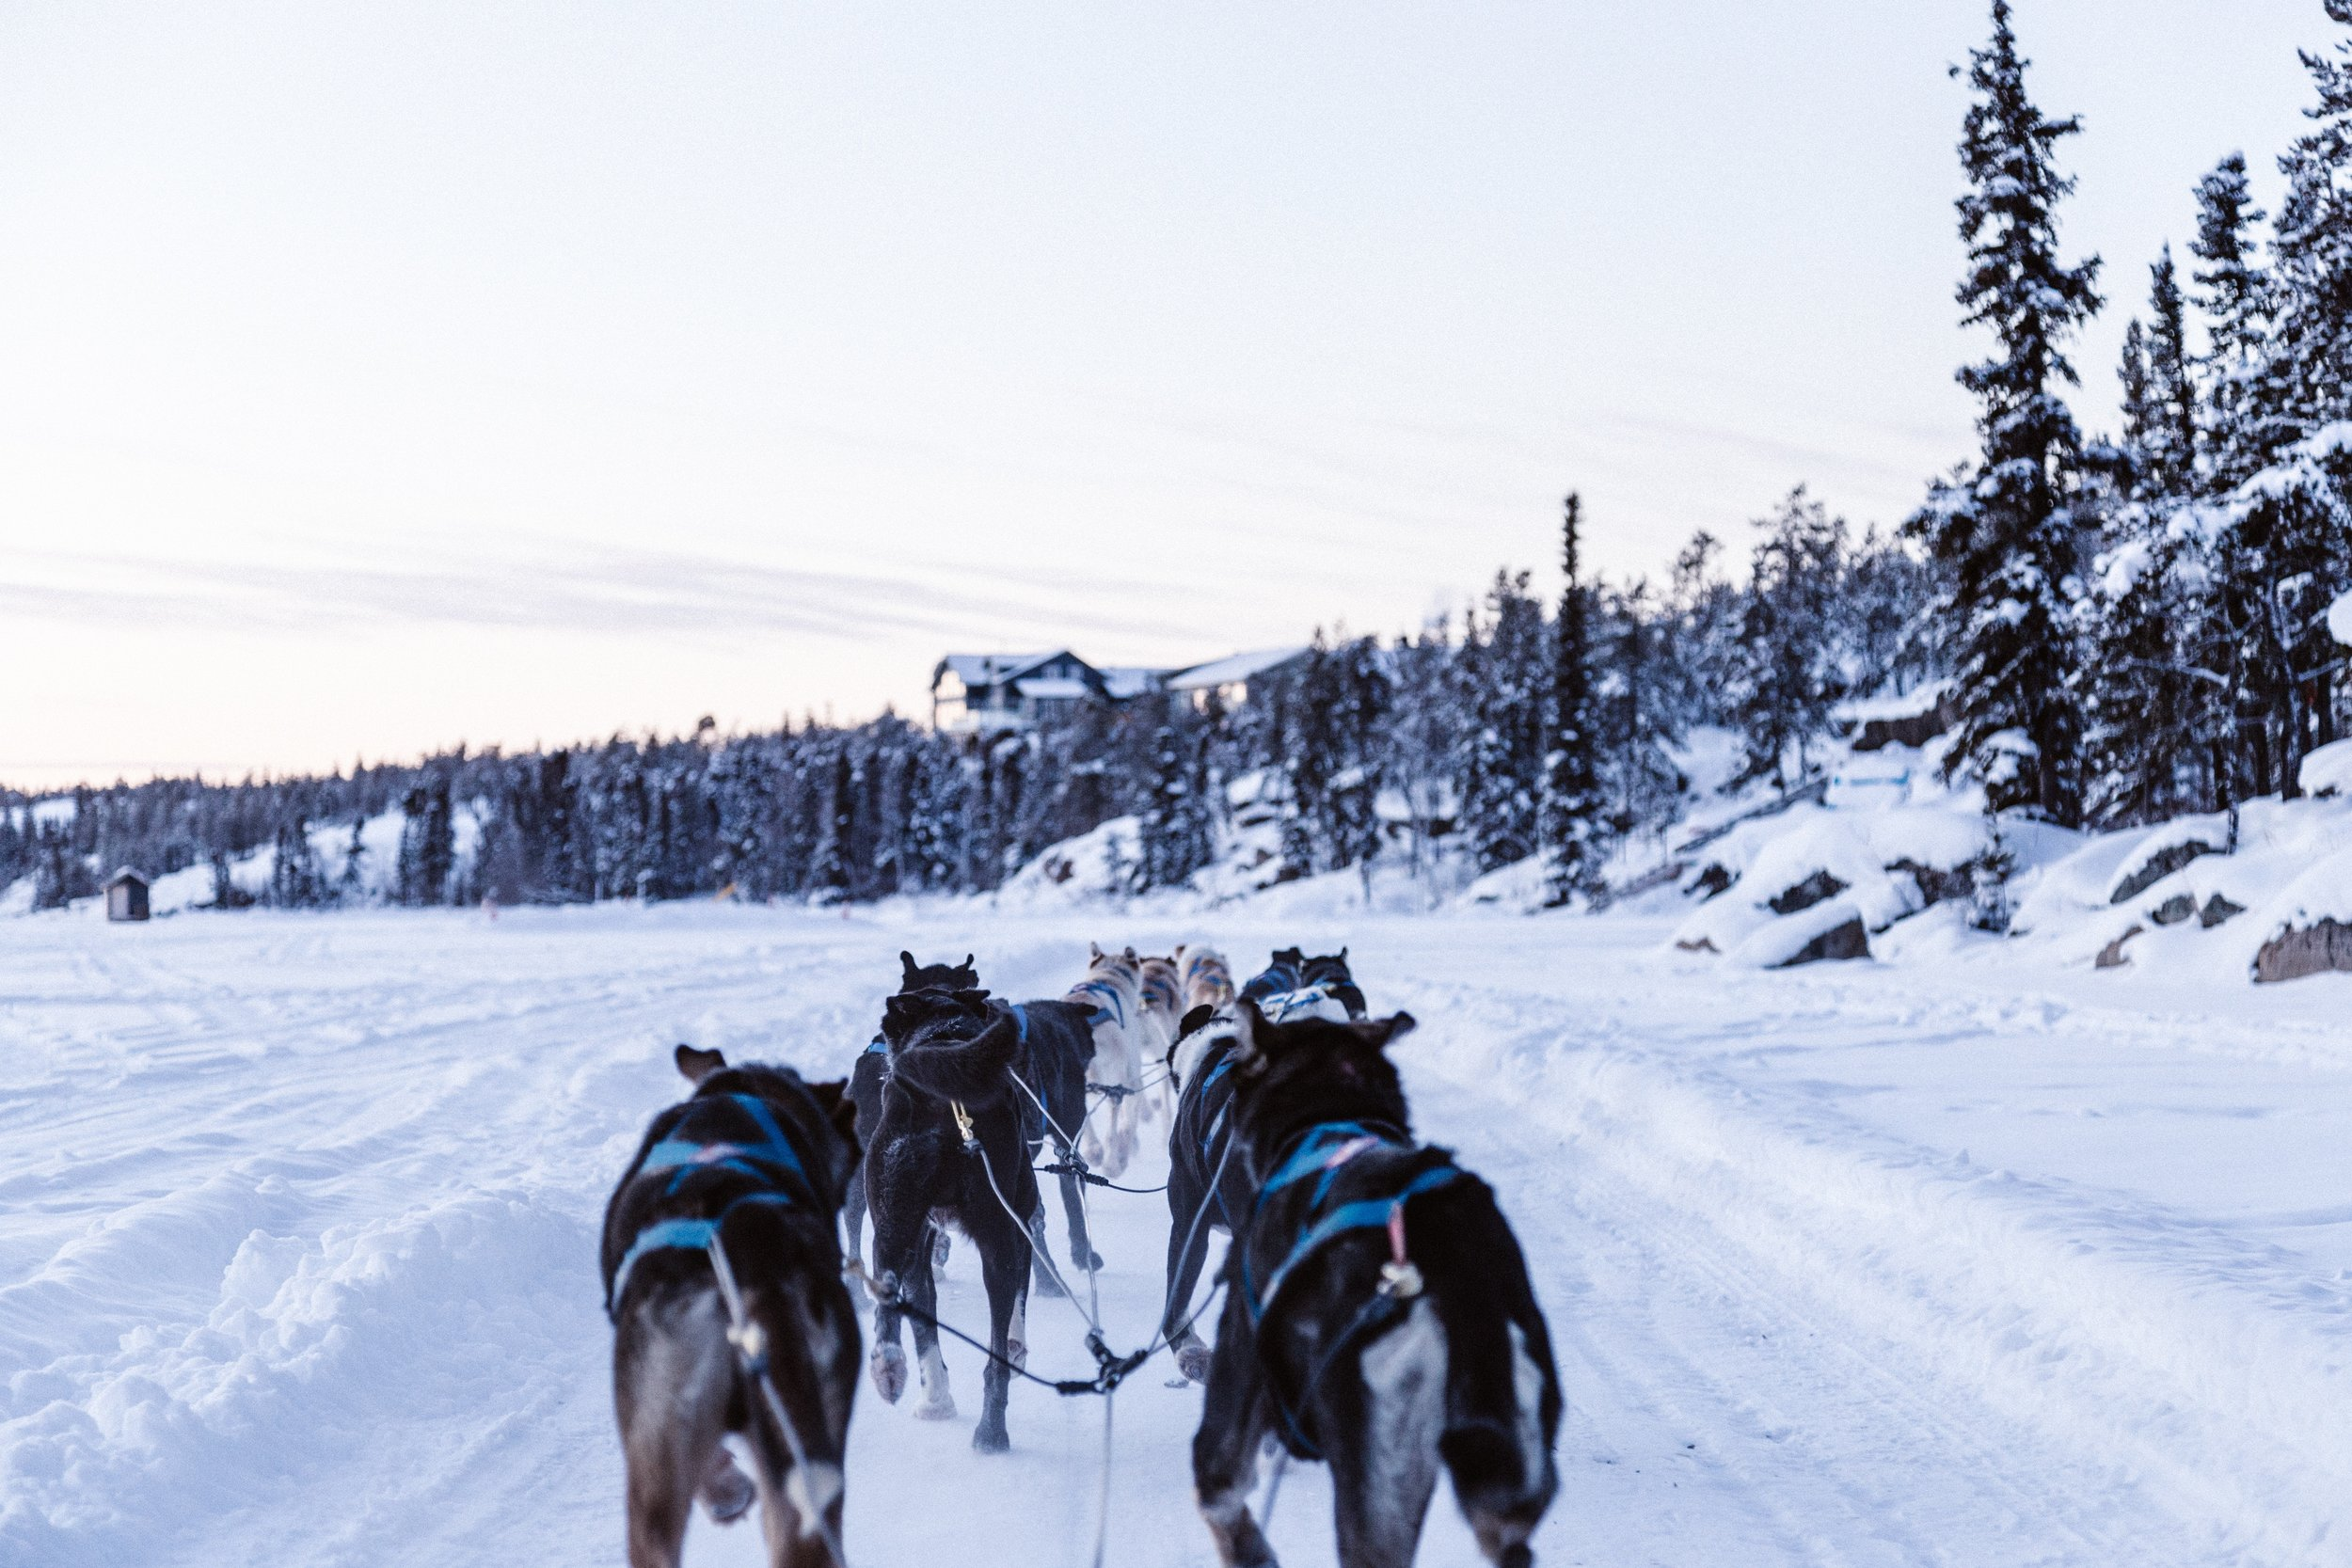 First Person View from the back of a dog sled; a dog sled team is a good example of teamwork in striving to accomplish a goal together